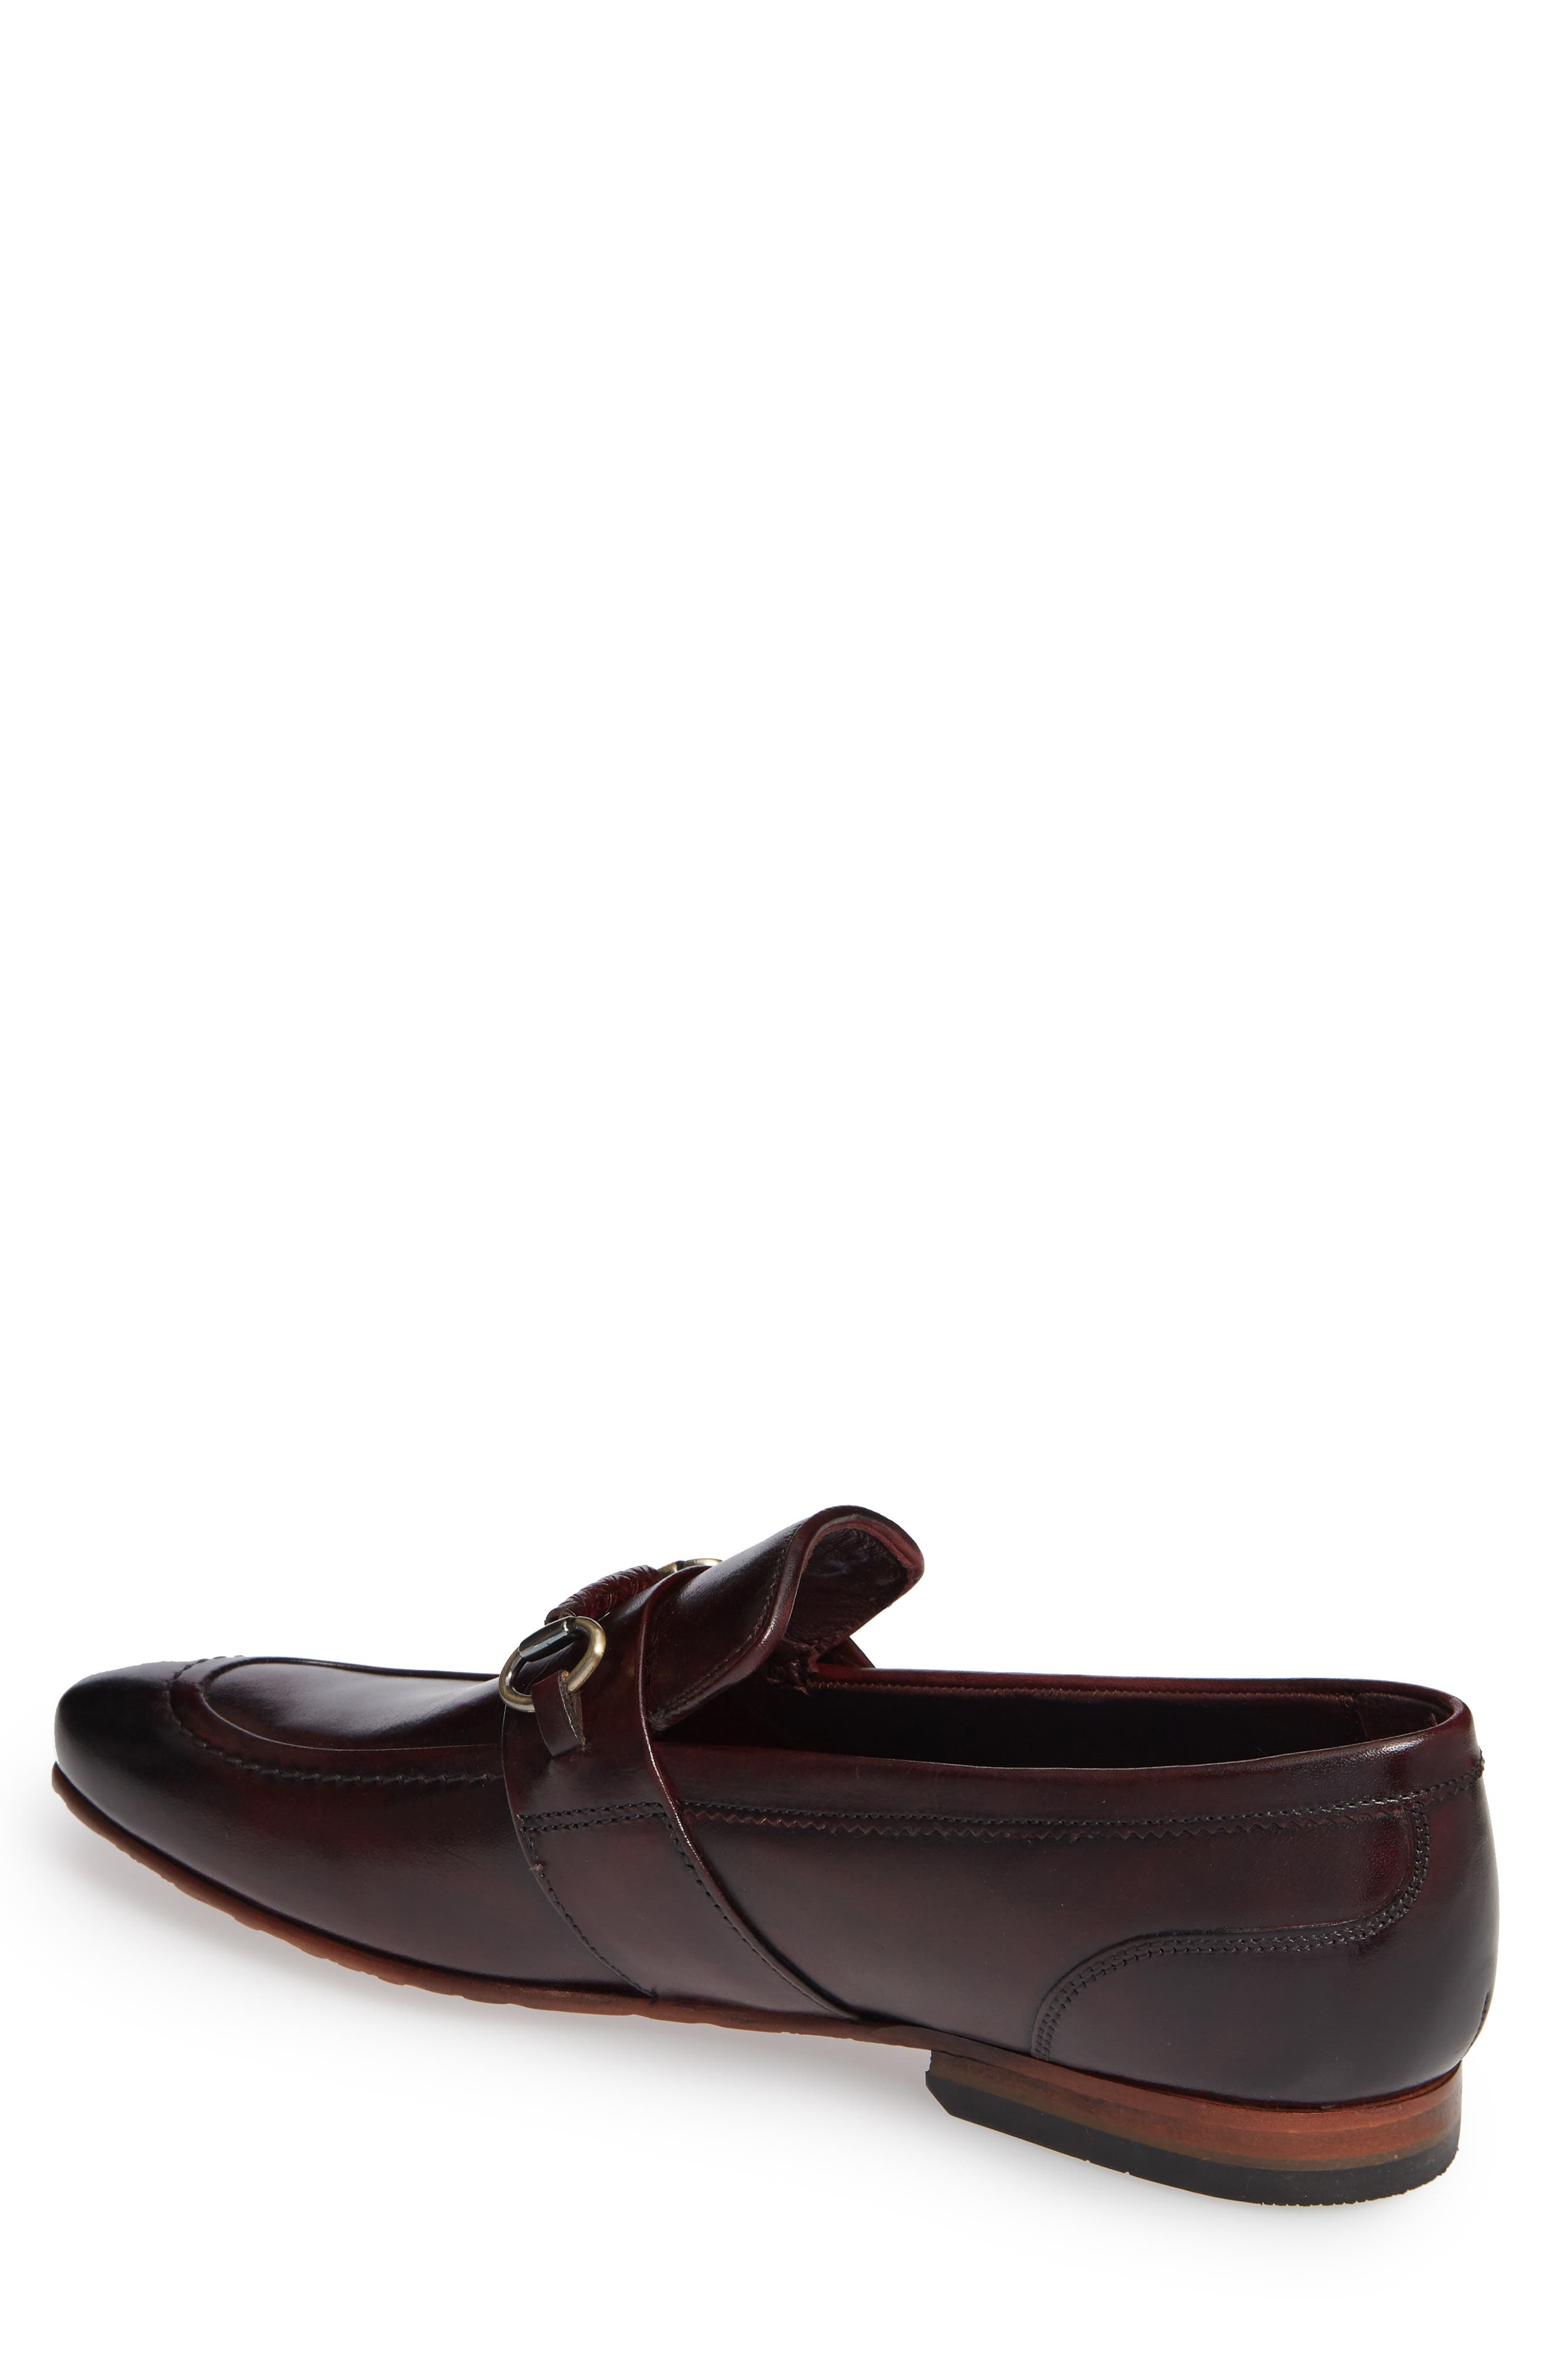 Daiser Bit Loafer,                             Alternate thumbnail 2, color,                             DARK RED LEATHER